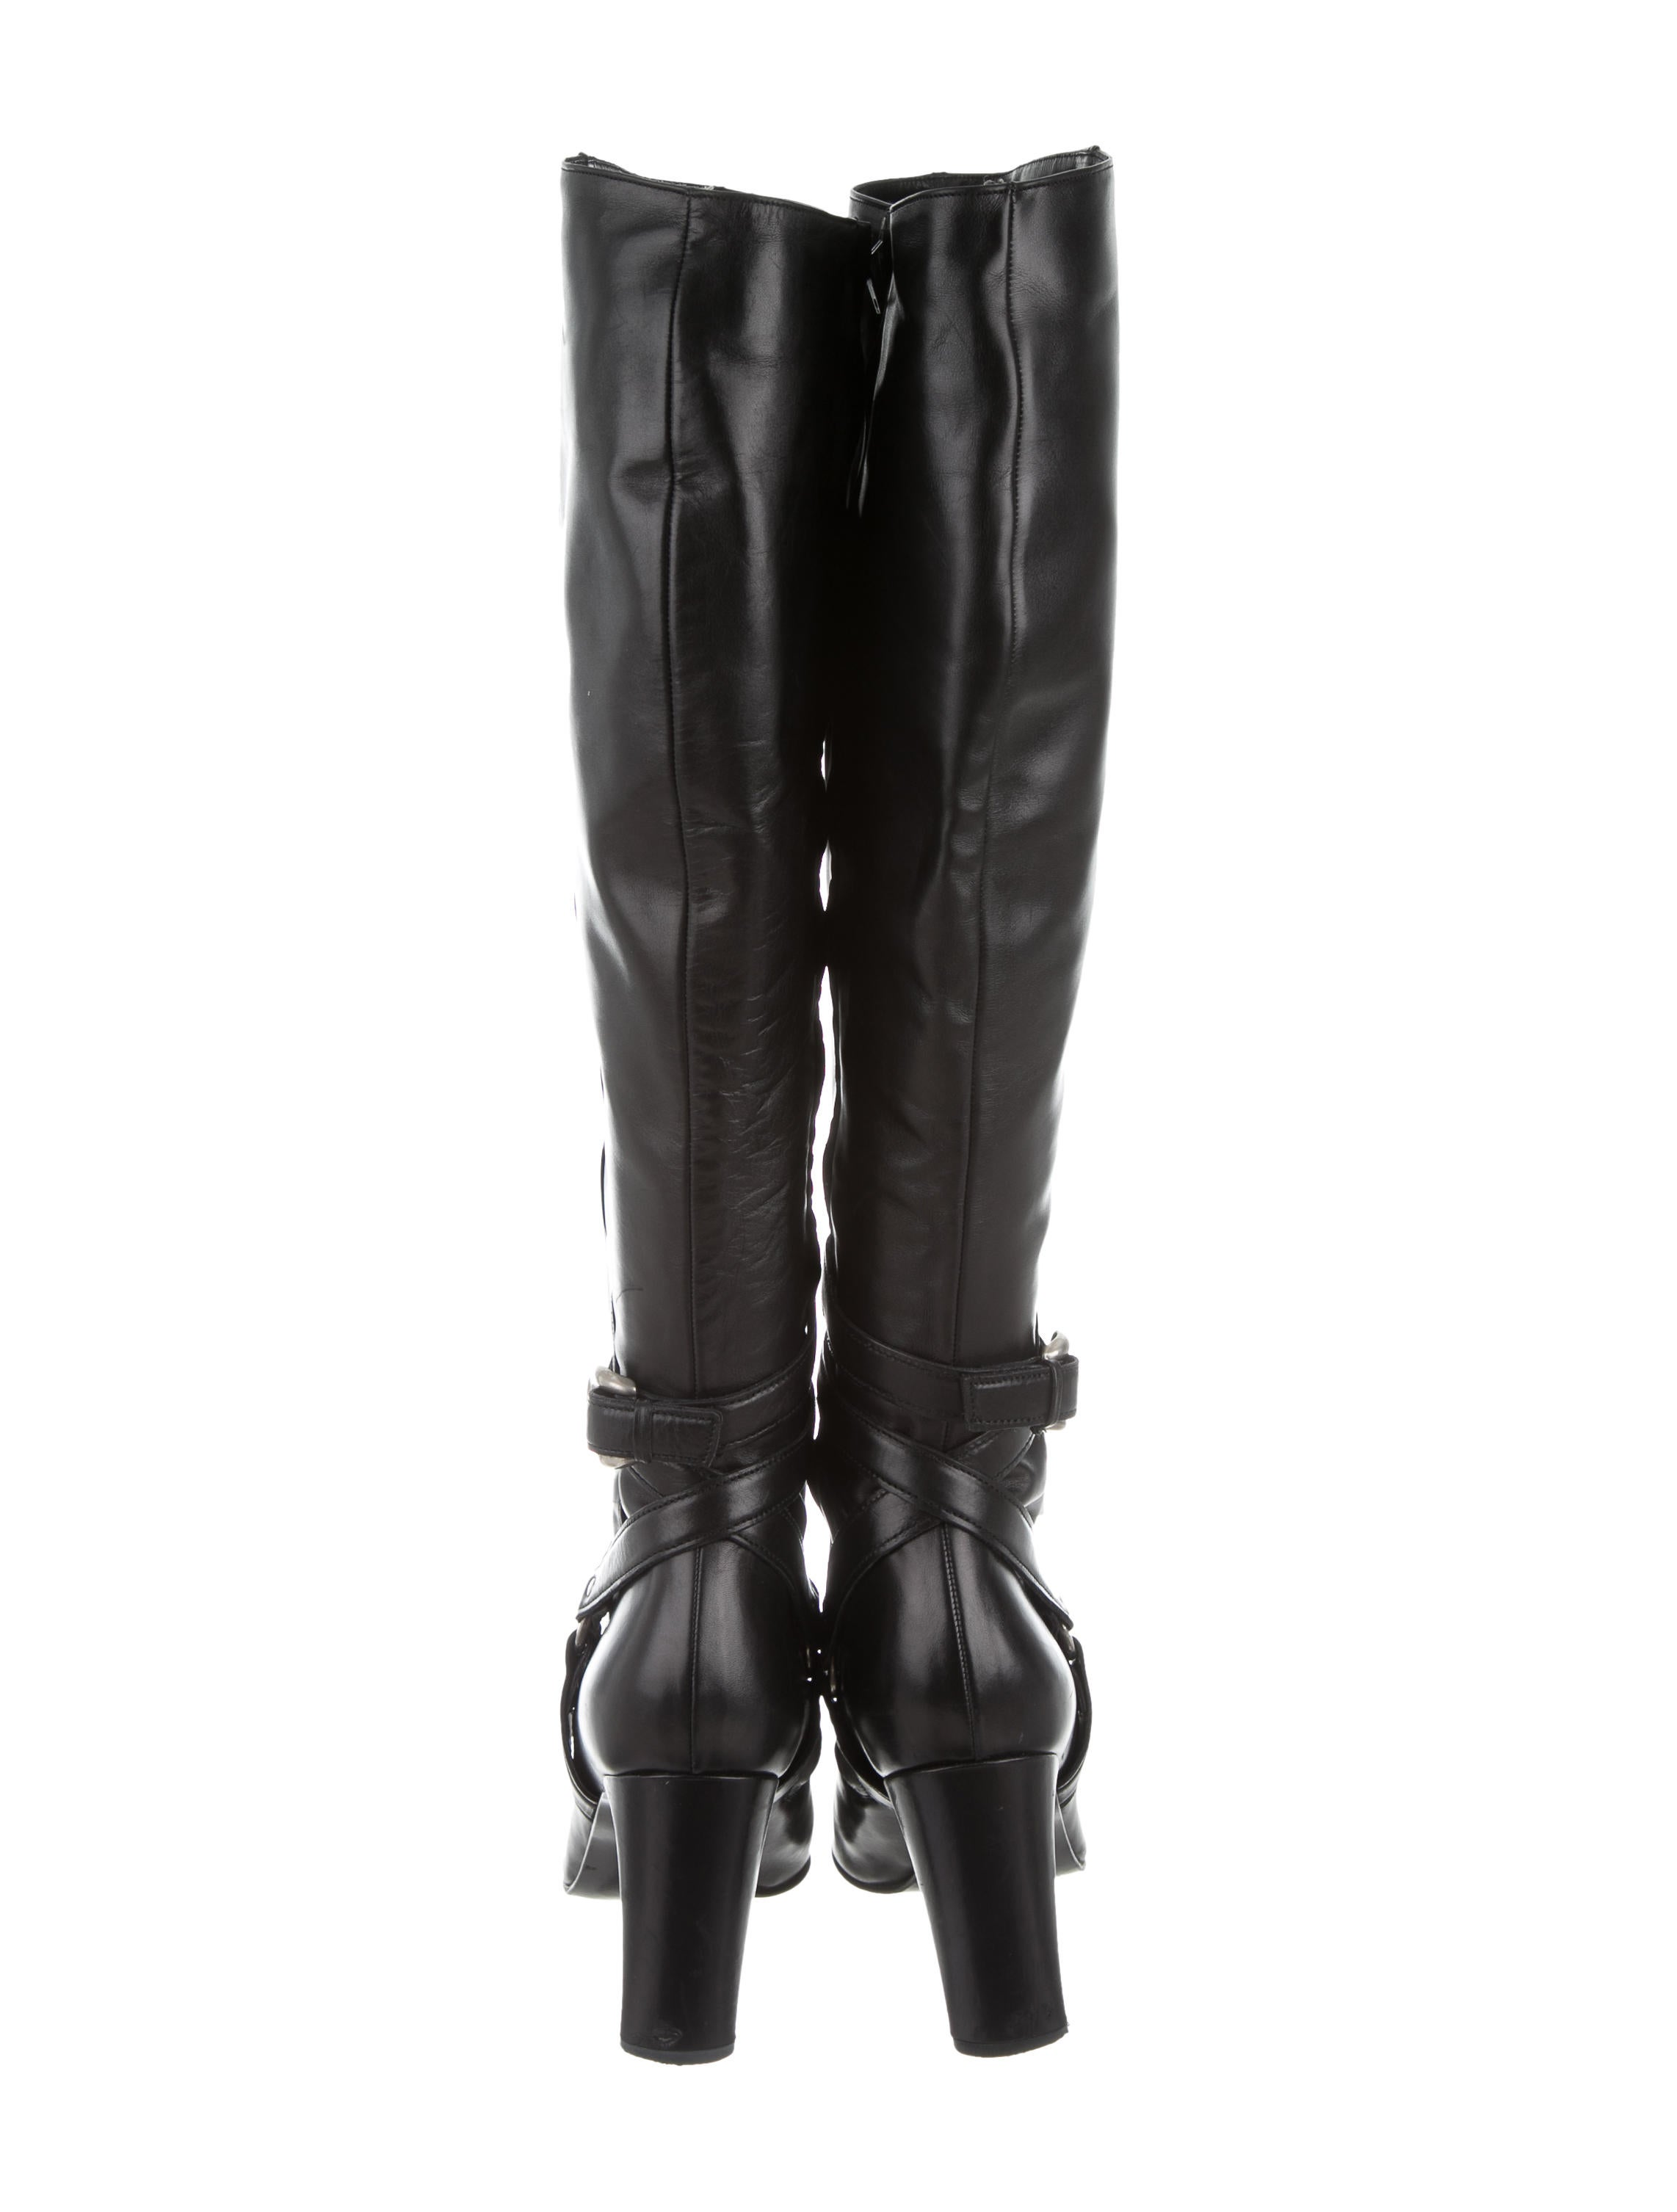 michel perry leather harness boots shoes wmn20023